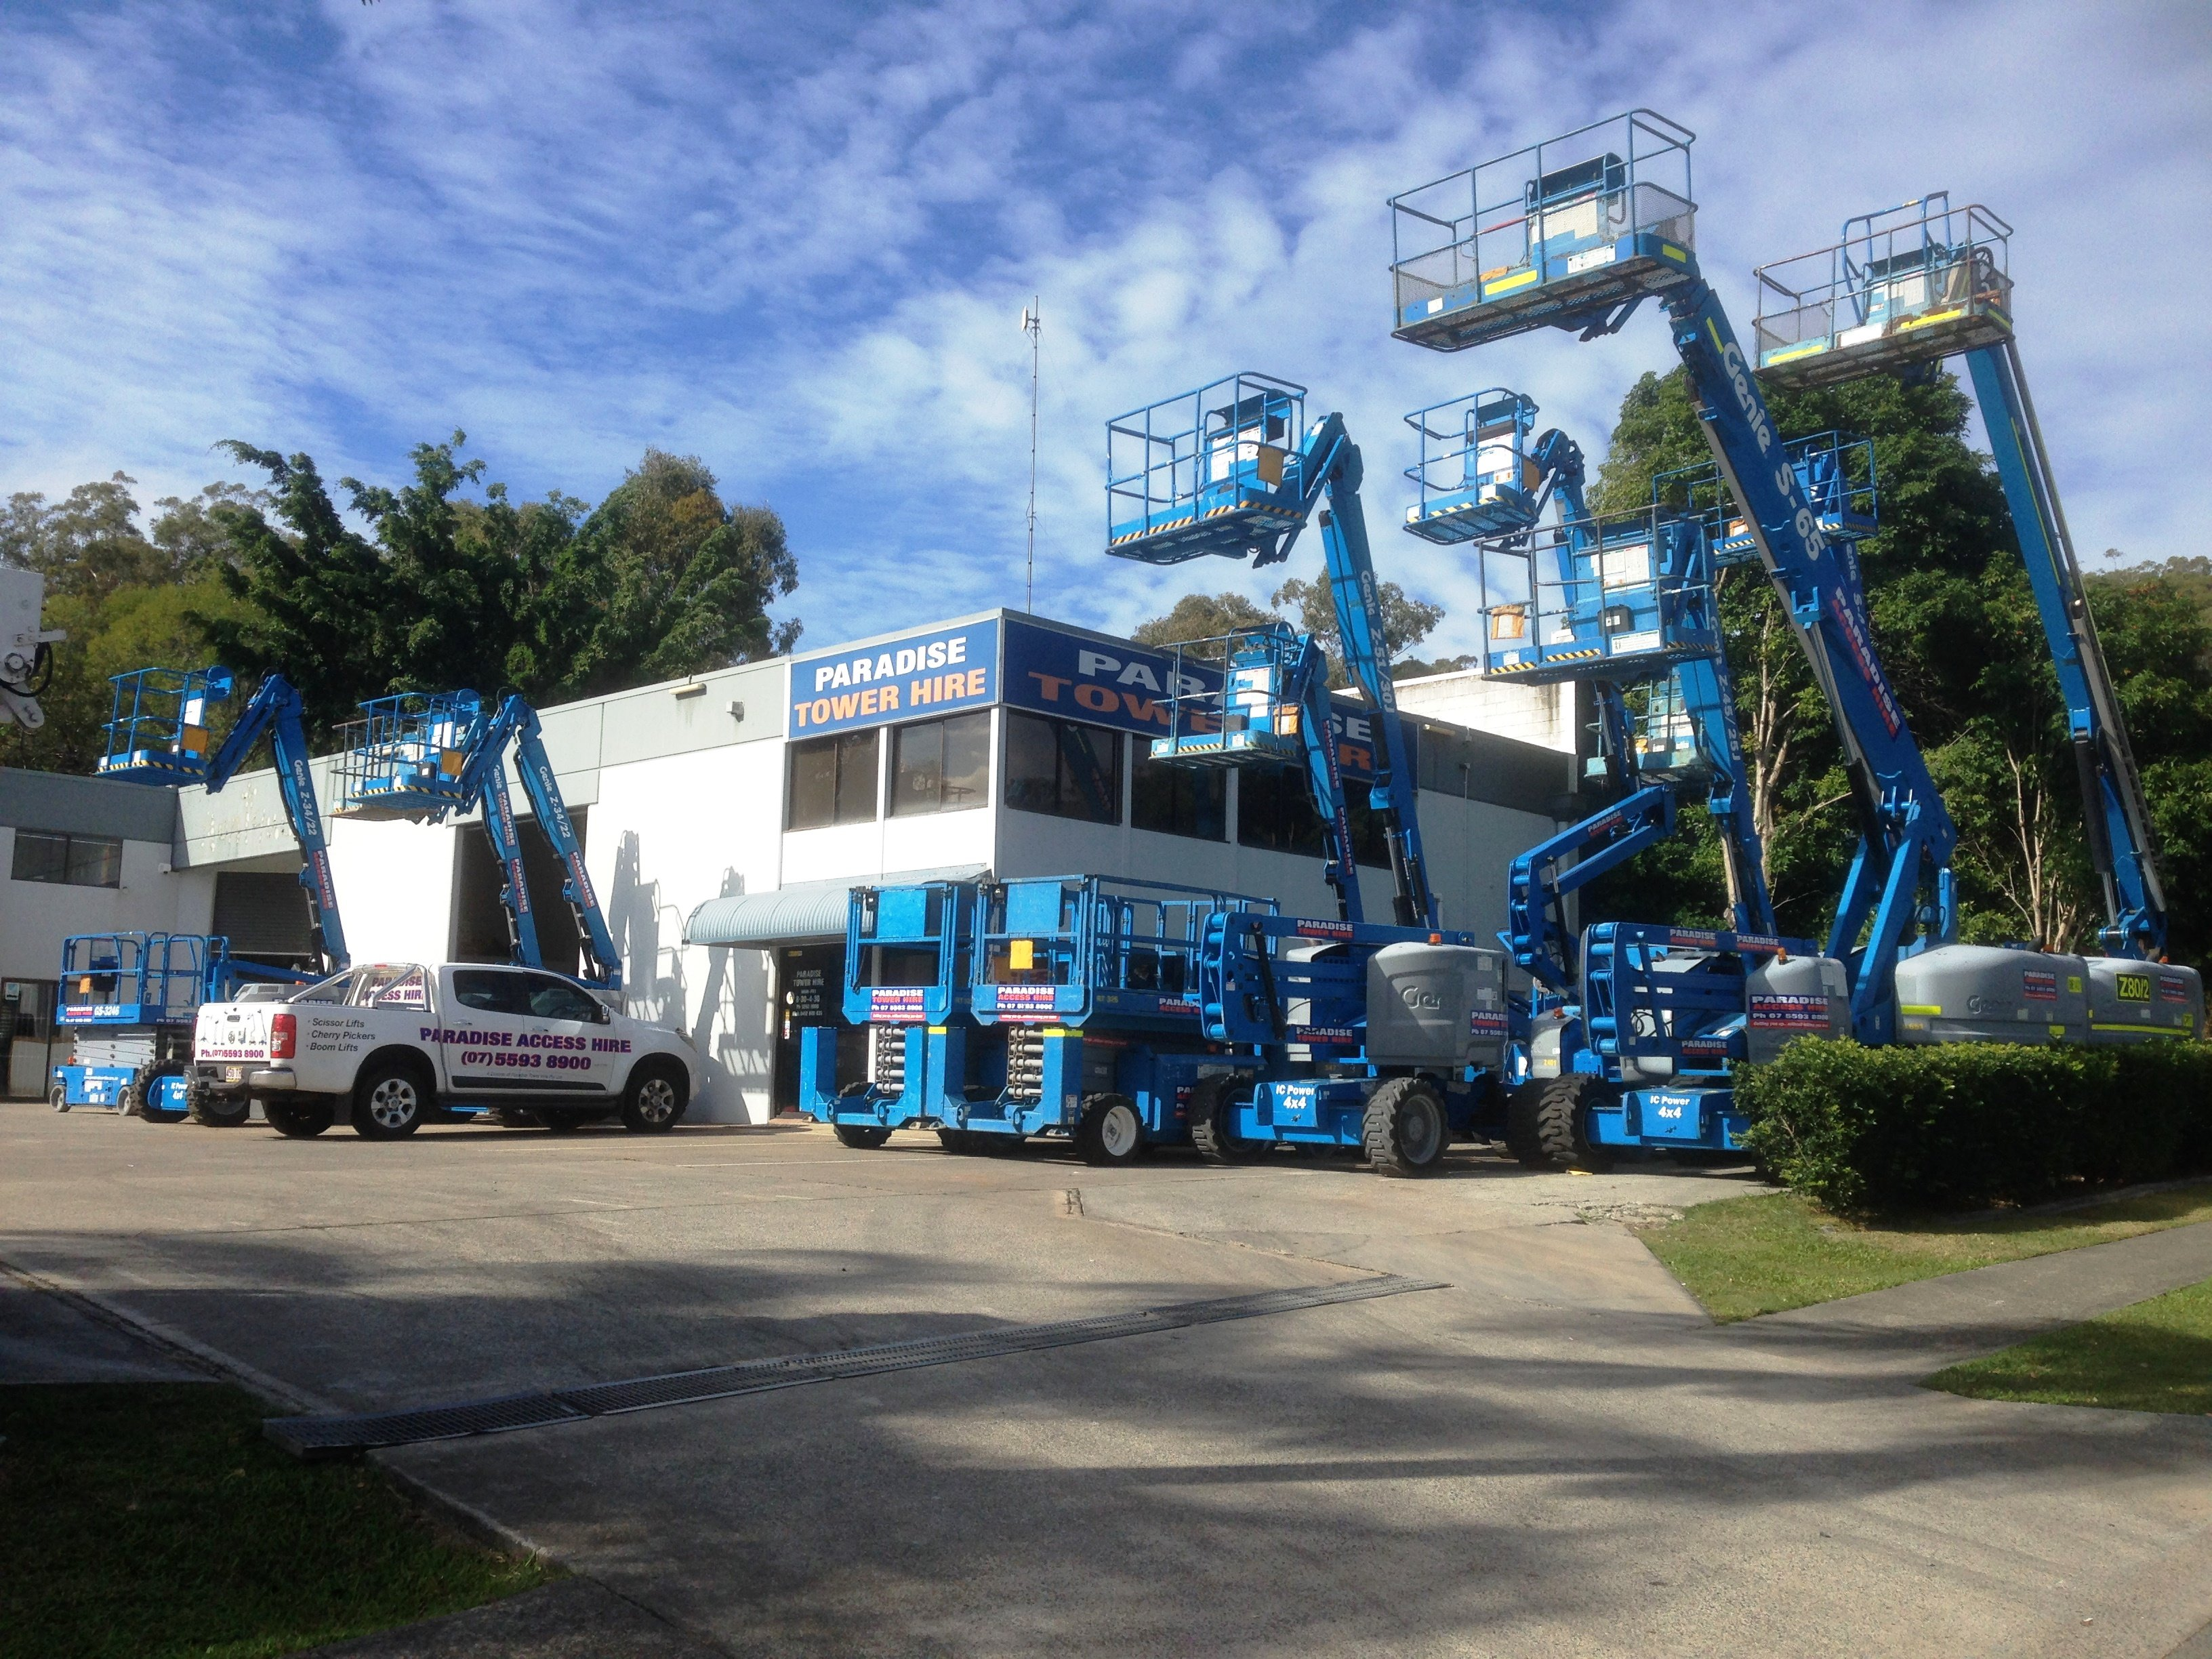 Paradise Tower Hire for experts and high quality Boom lifts and Cherry Picker Services